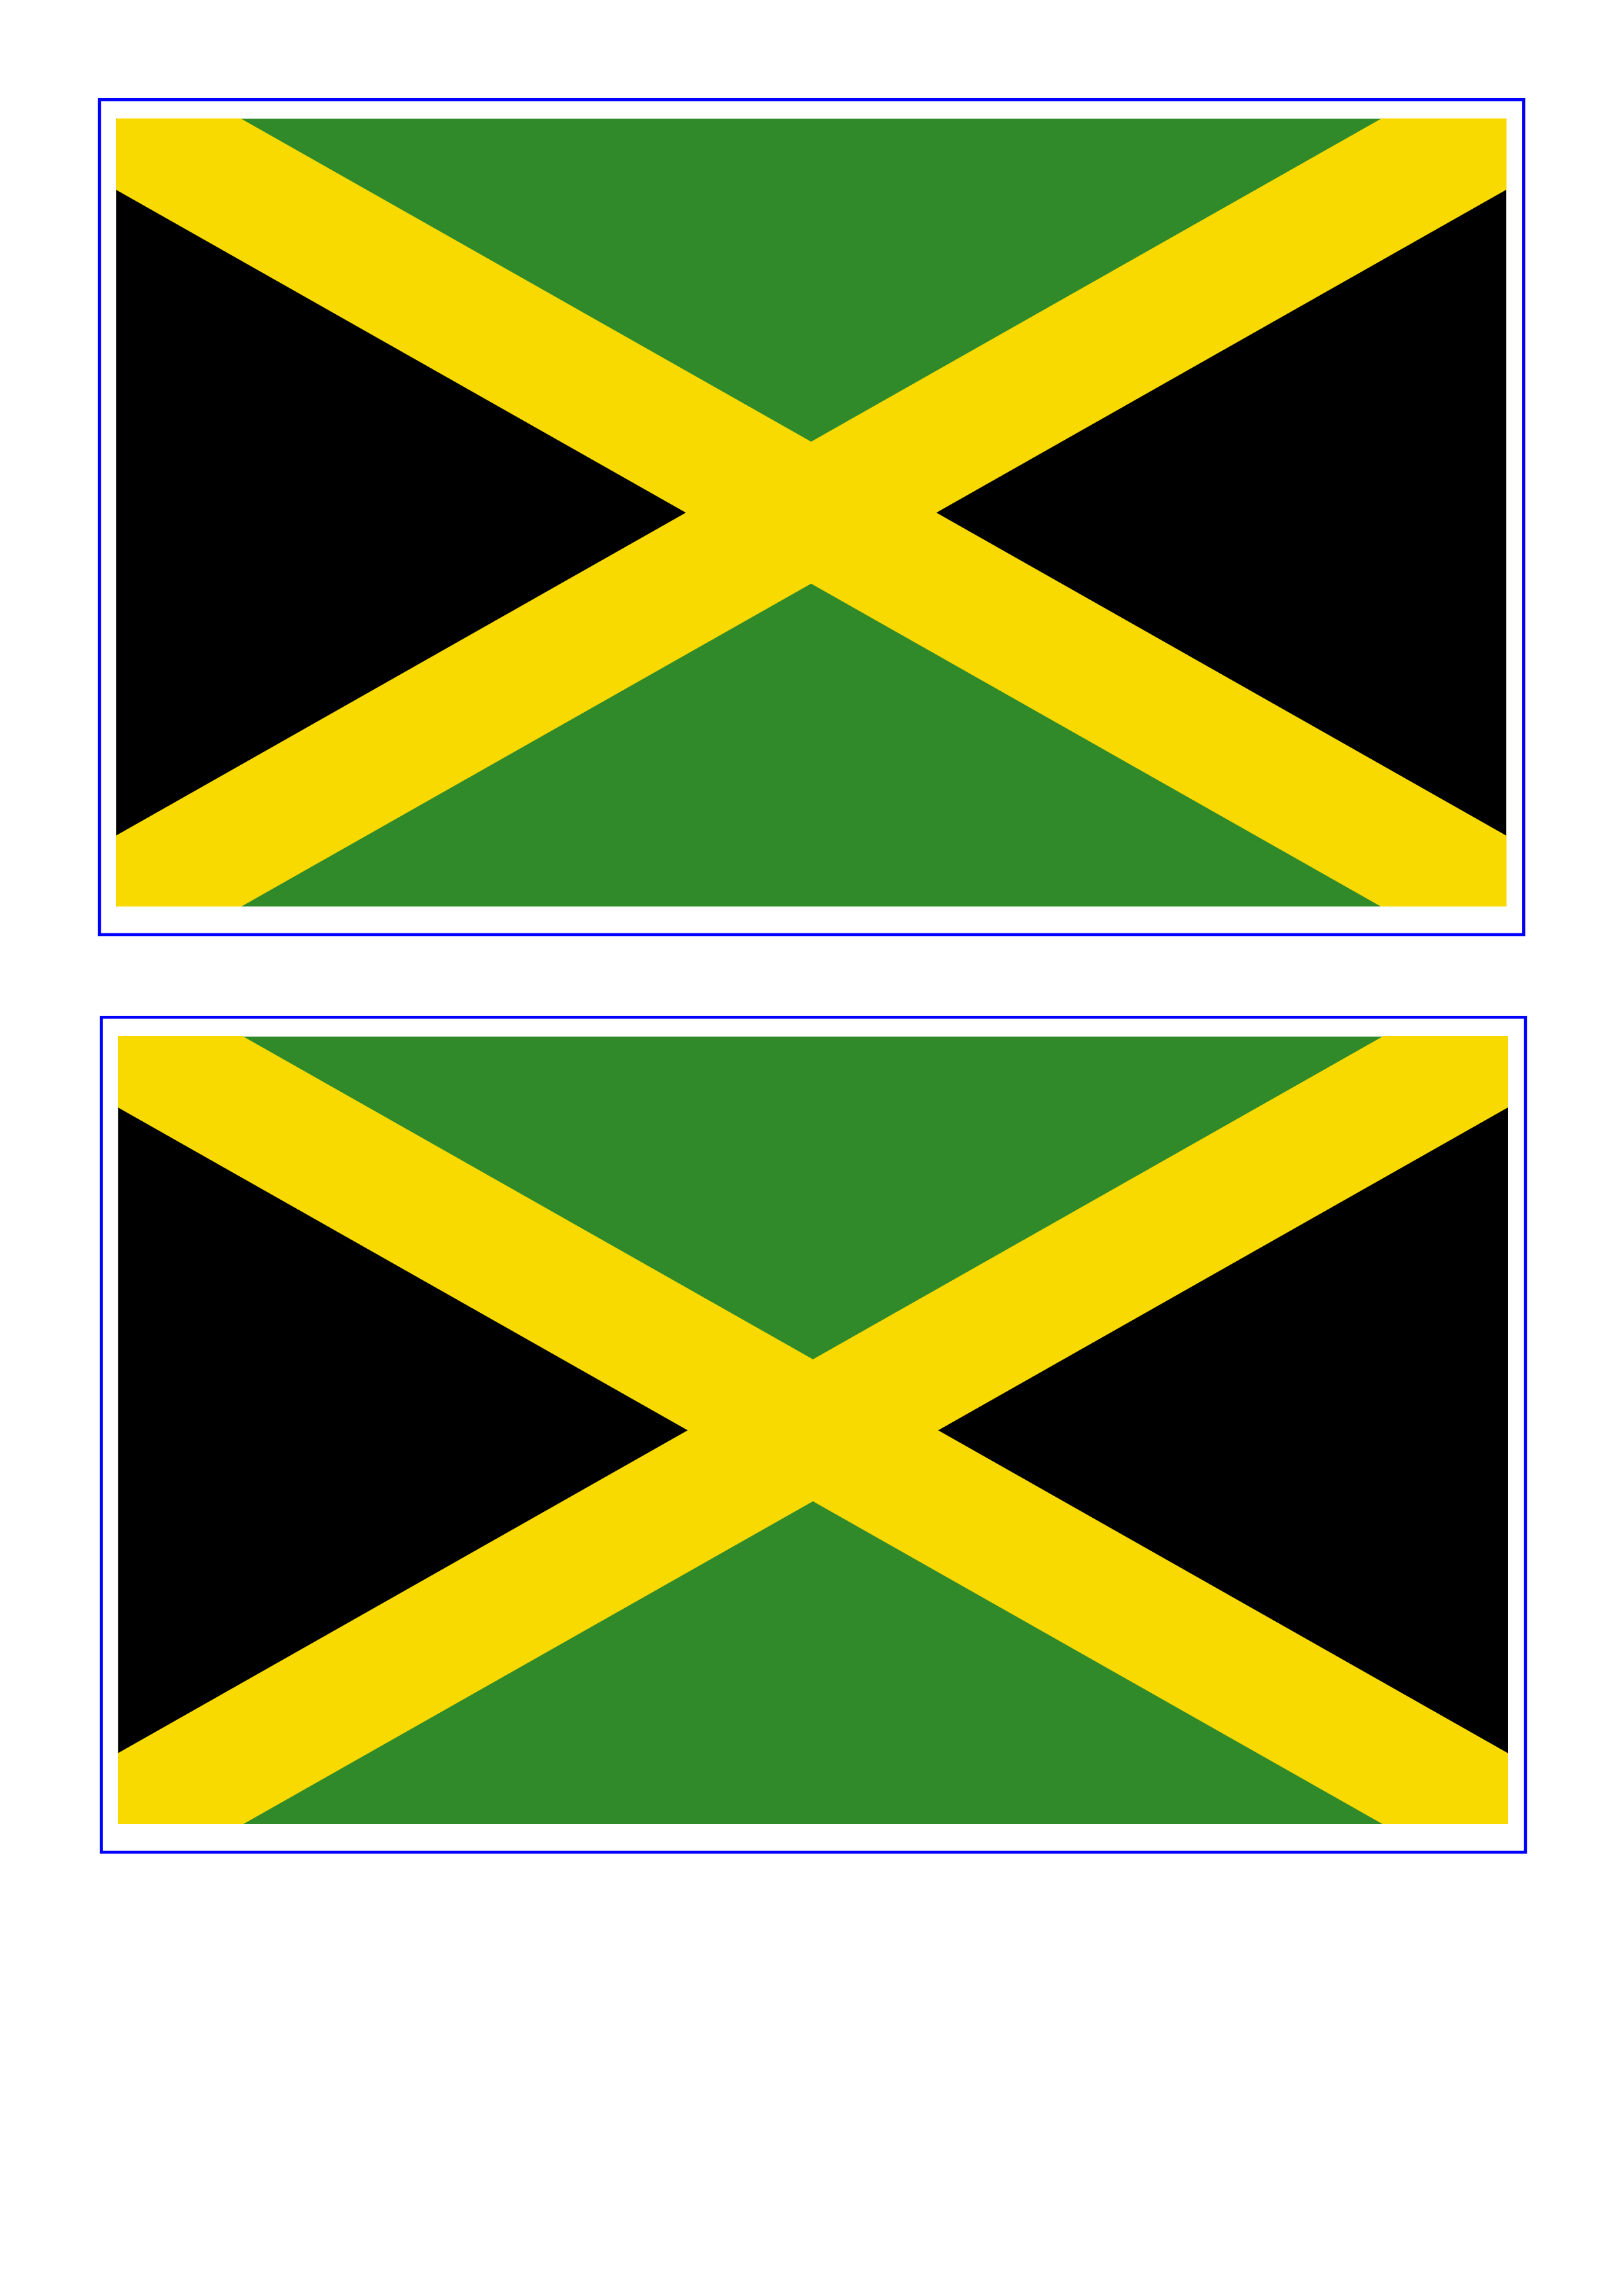 Free jamaica flag templates at allbusinesstemplates jamaica flag main image download template toneelgroepblik Gallery